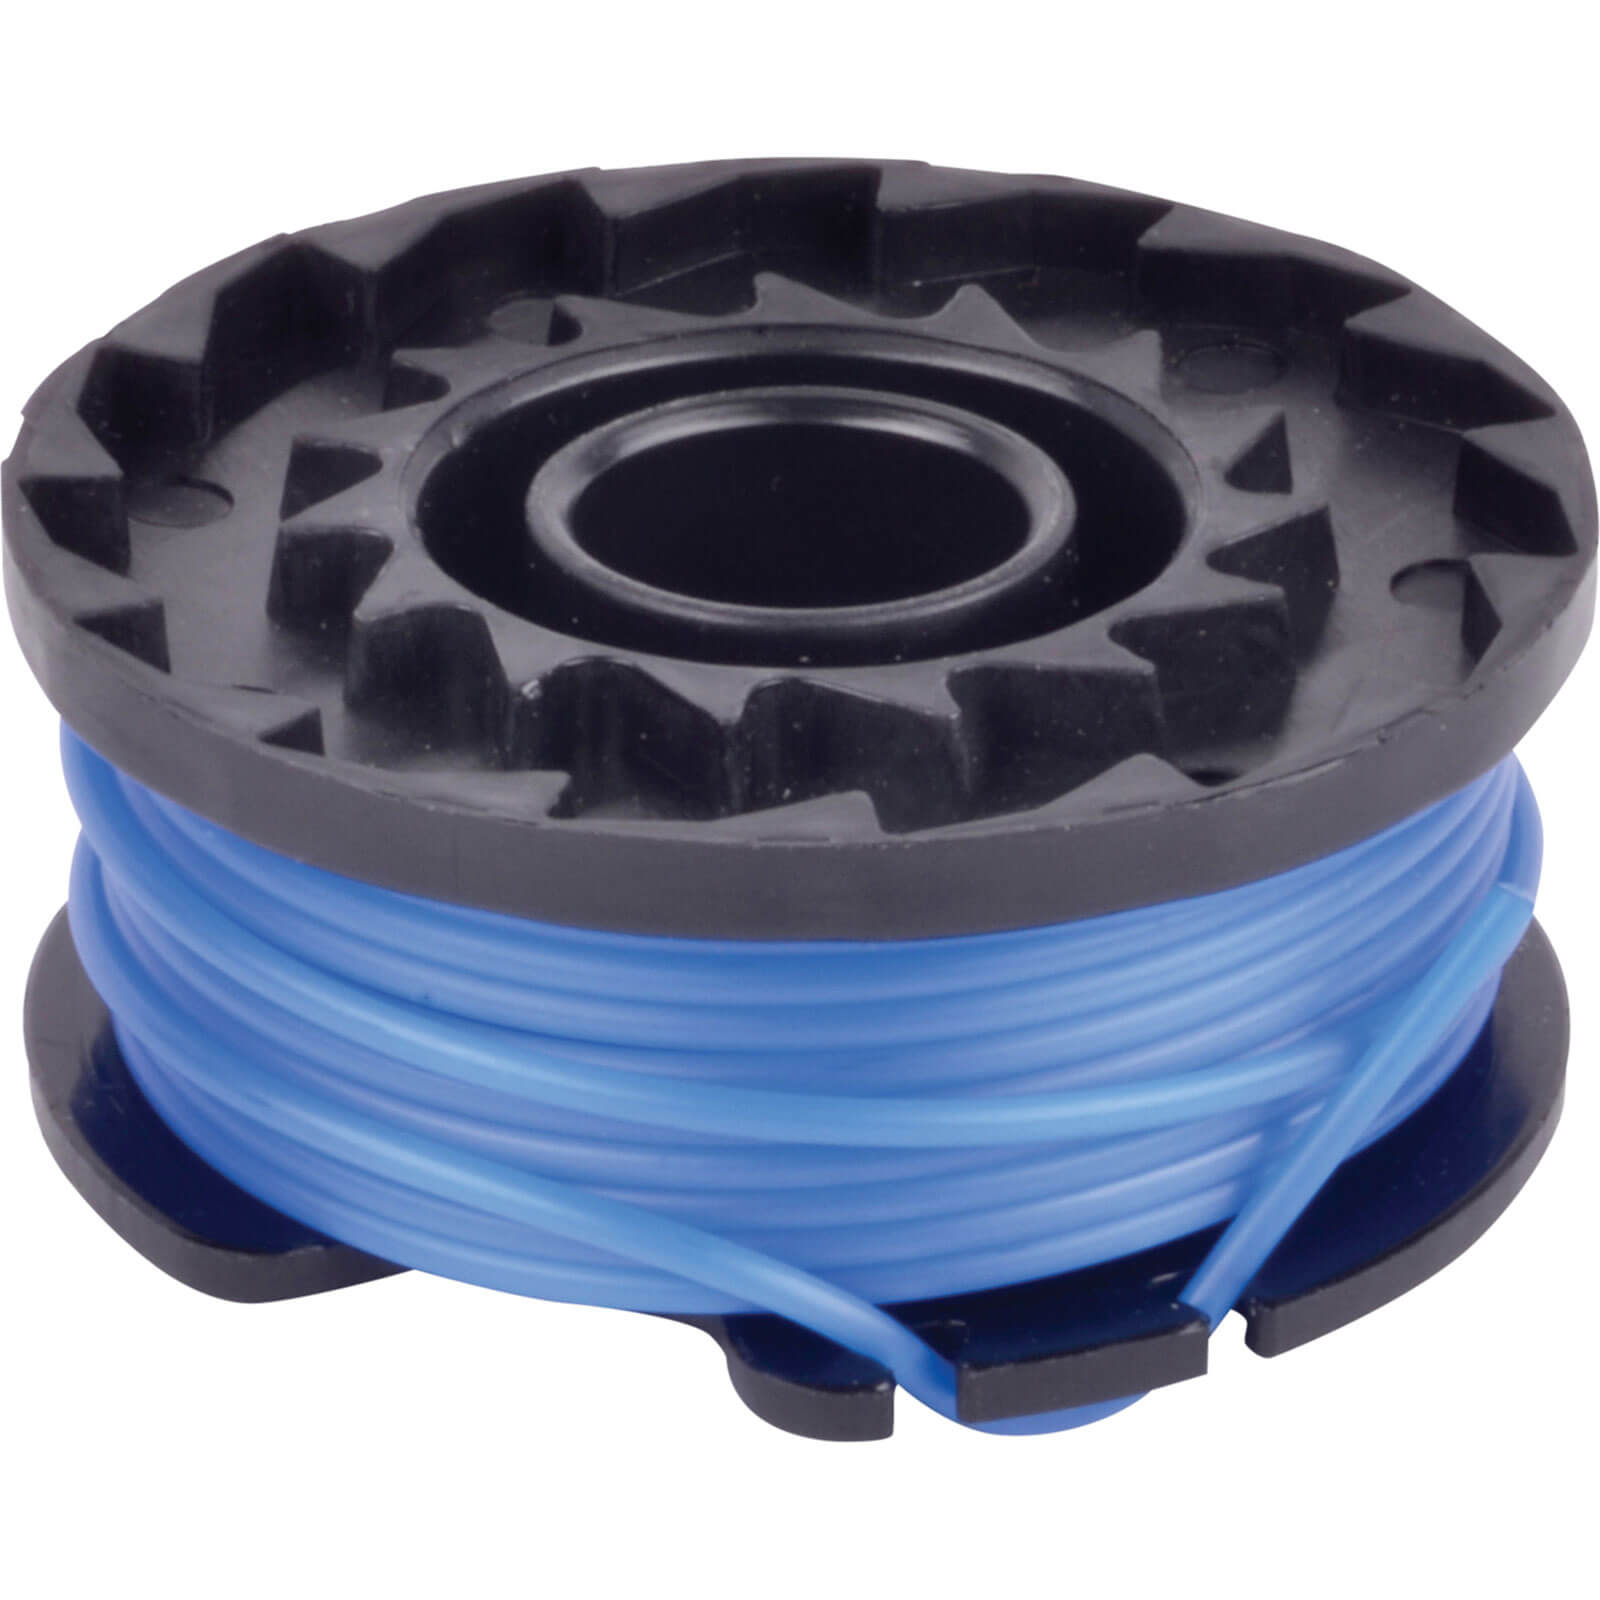 Image of ALM 1.5mm x 6m Spool & Line for Various Ryobi One+ Grass Trimmers Pack of 1